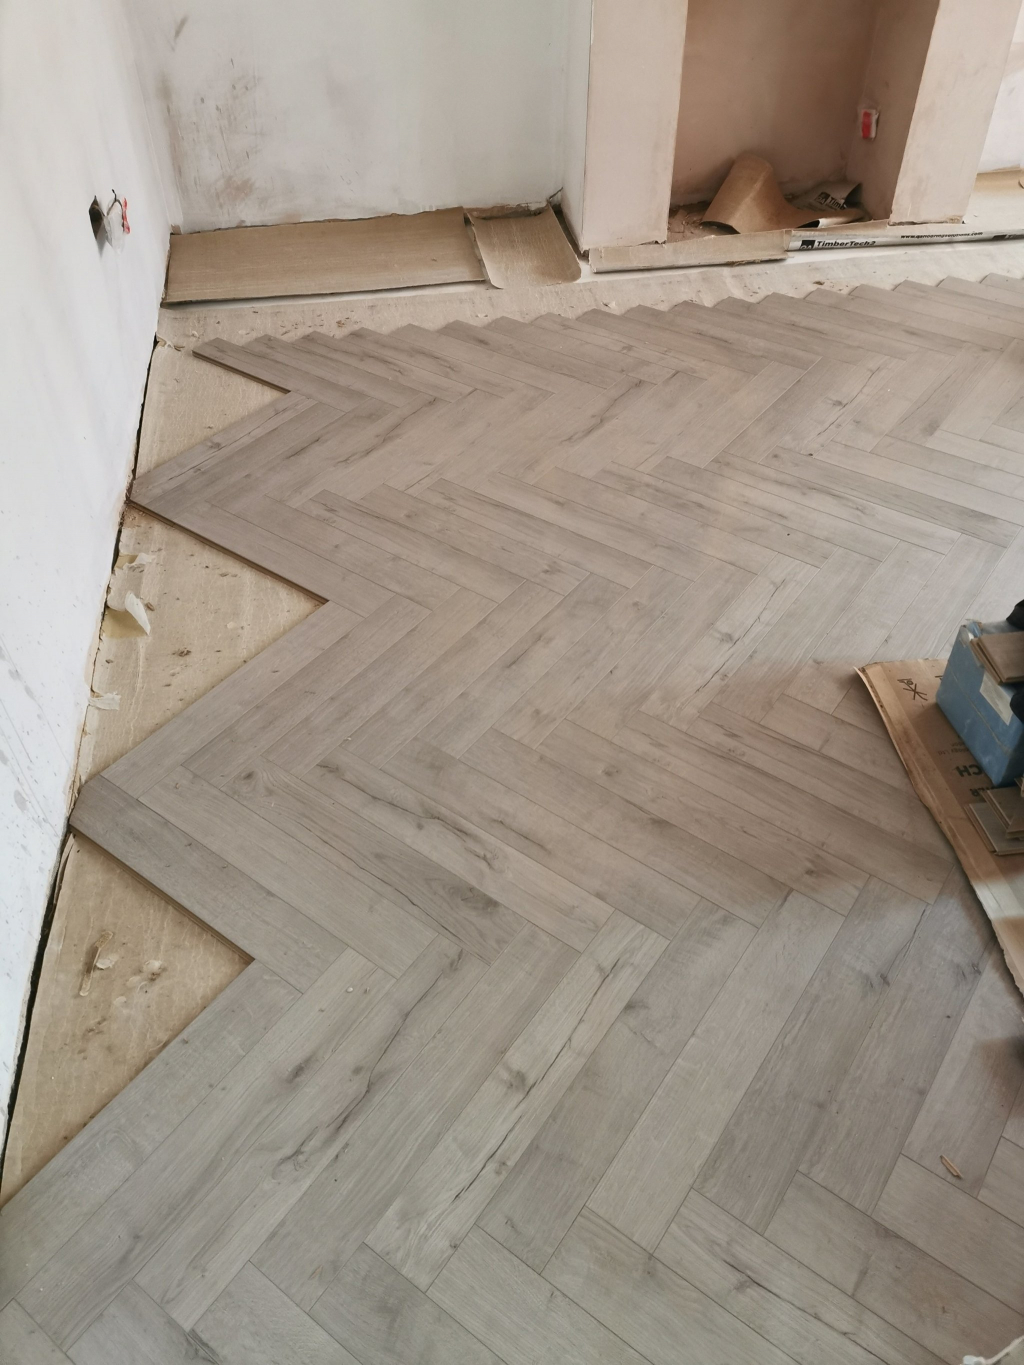 Fitting Herringbone Laminate Flooring  - #6